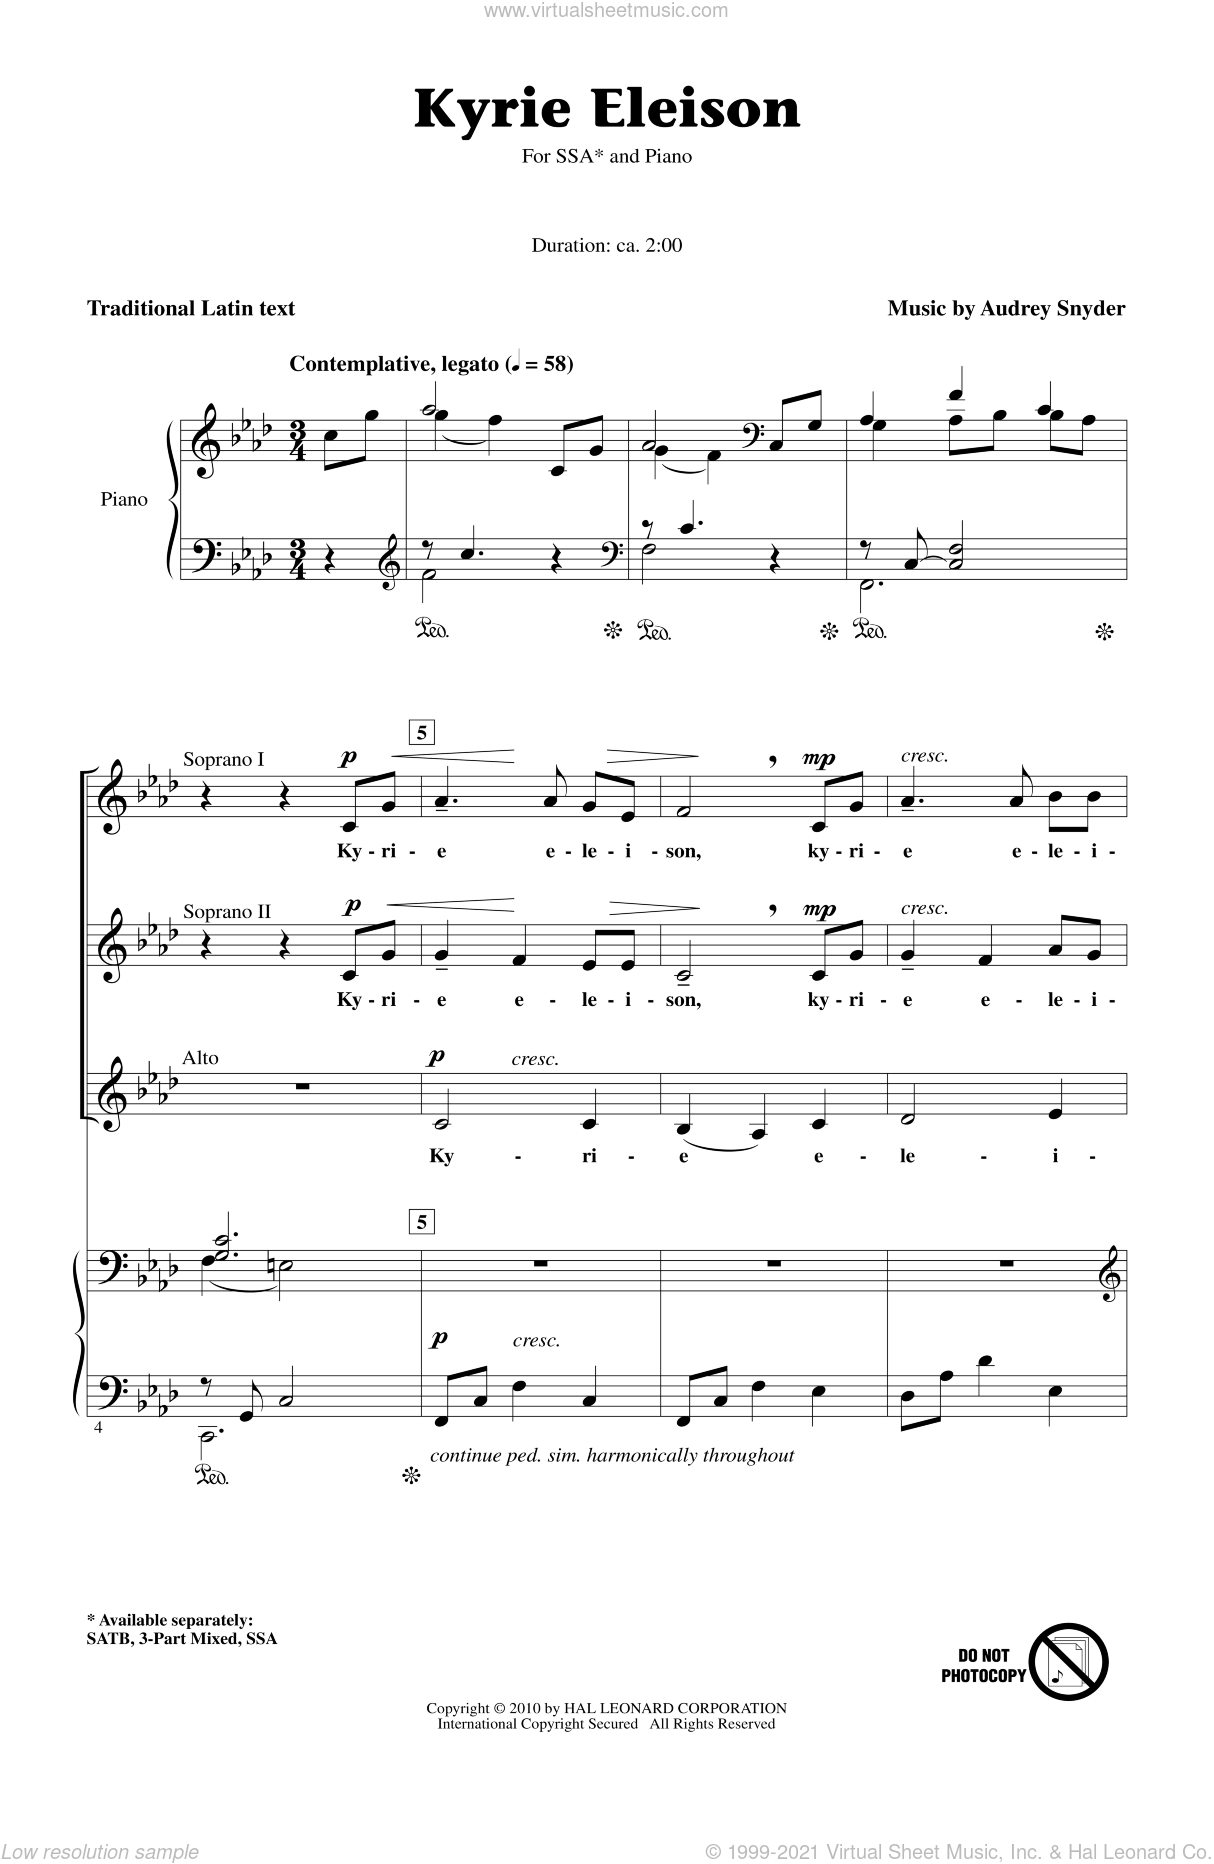 Kyrie Eleison sheet music for choir (soprano voice, alto voice, choir) by Audrey Snyder and Miscellaneous. Score Image Preview.